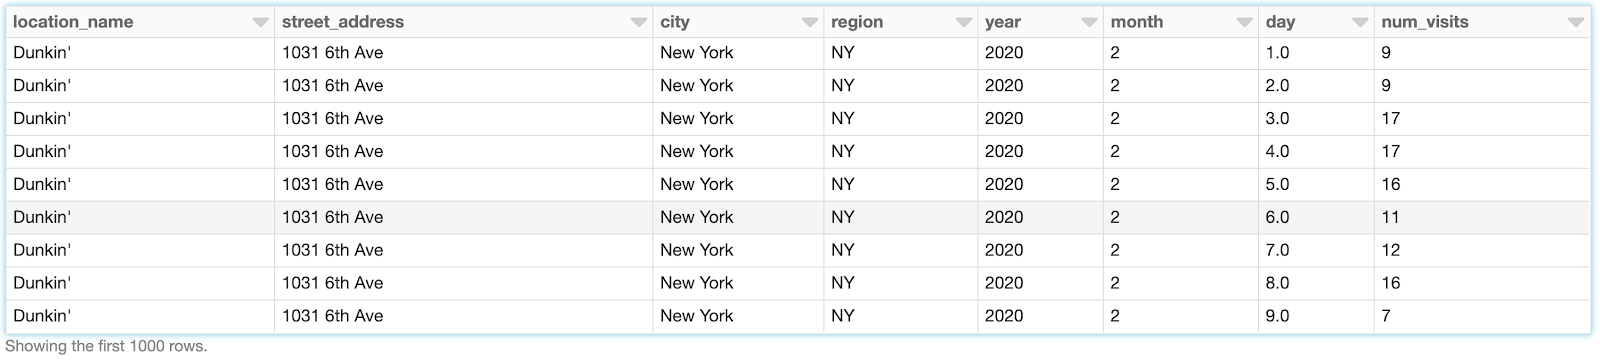 Example table demonstrating the use of alternative geolocation data to analyze the effectiveness of marketing promotion.